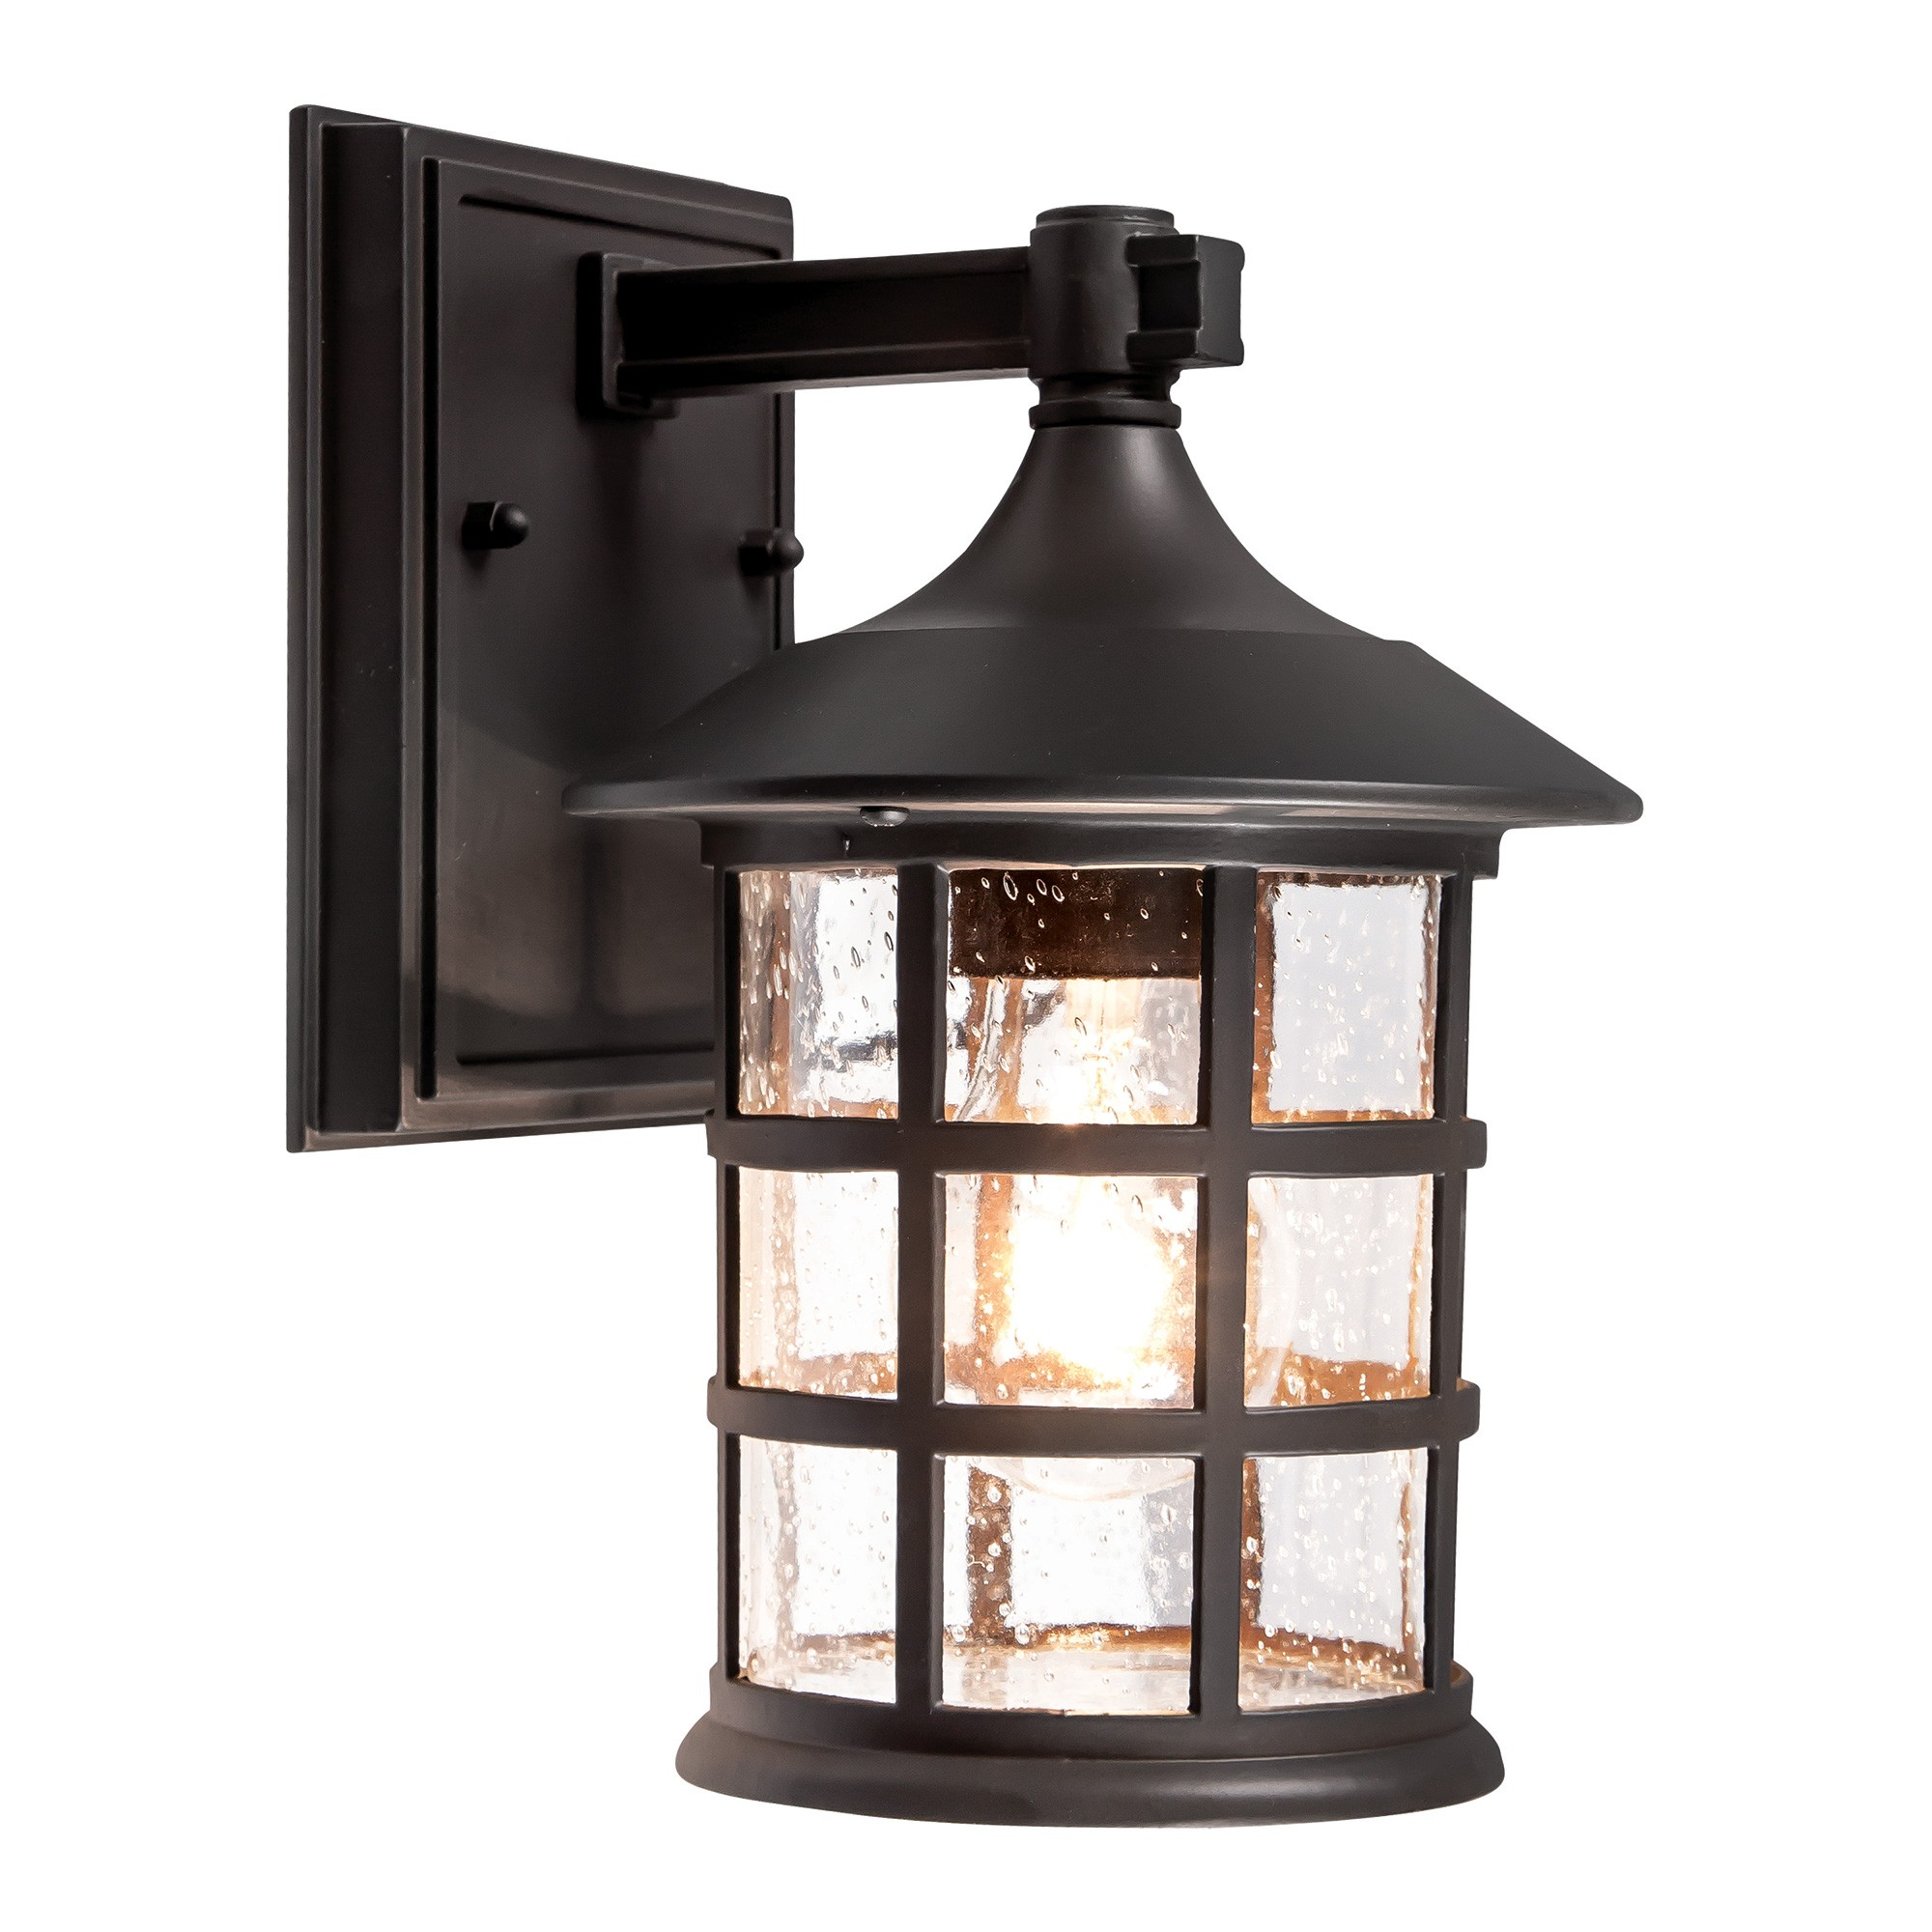 Louis IP44 Outdoor Wall Lantern, Small